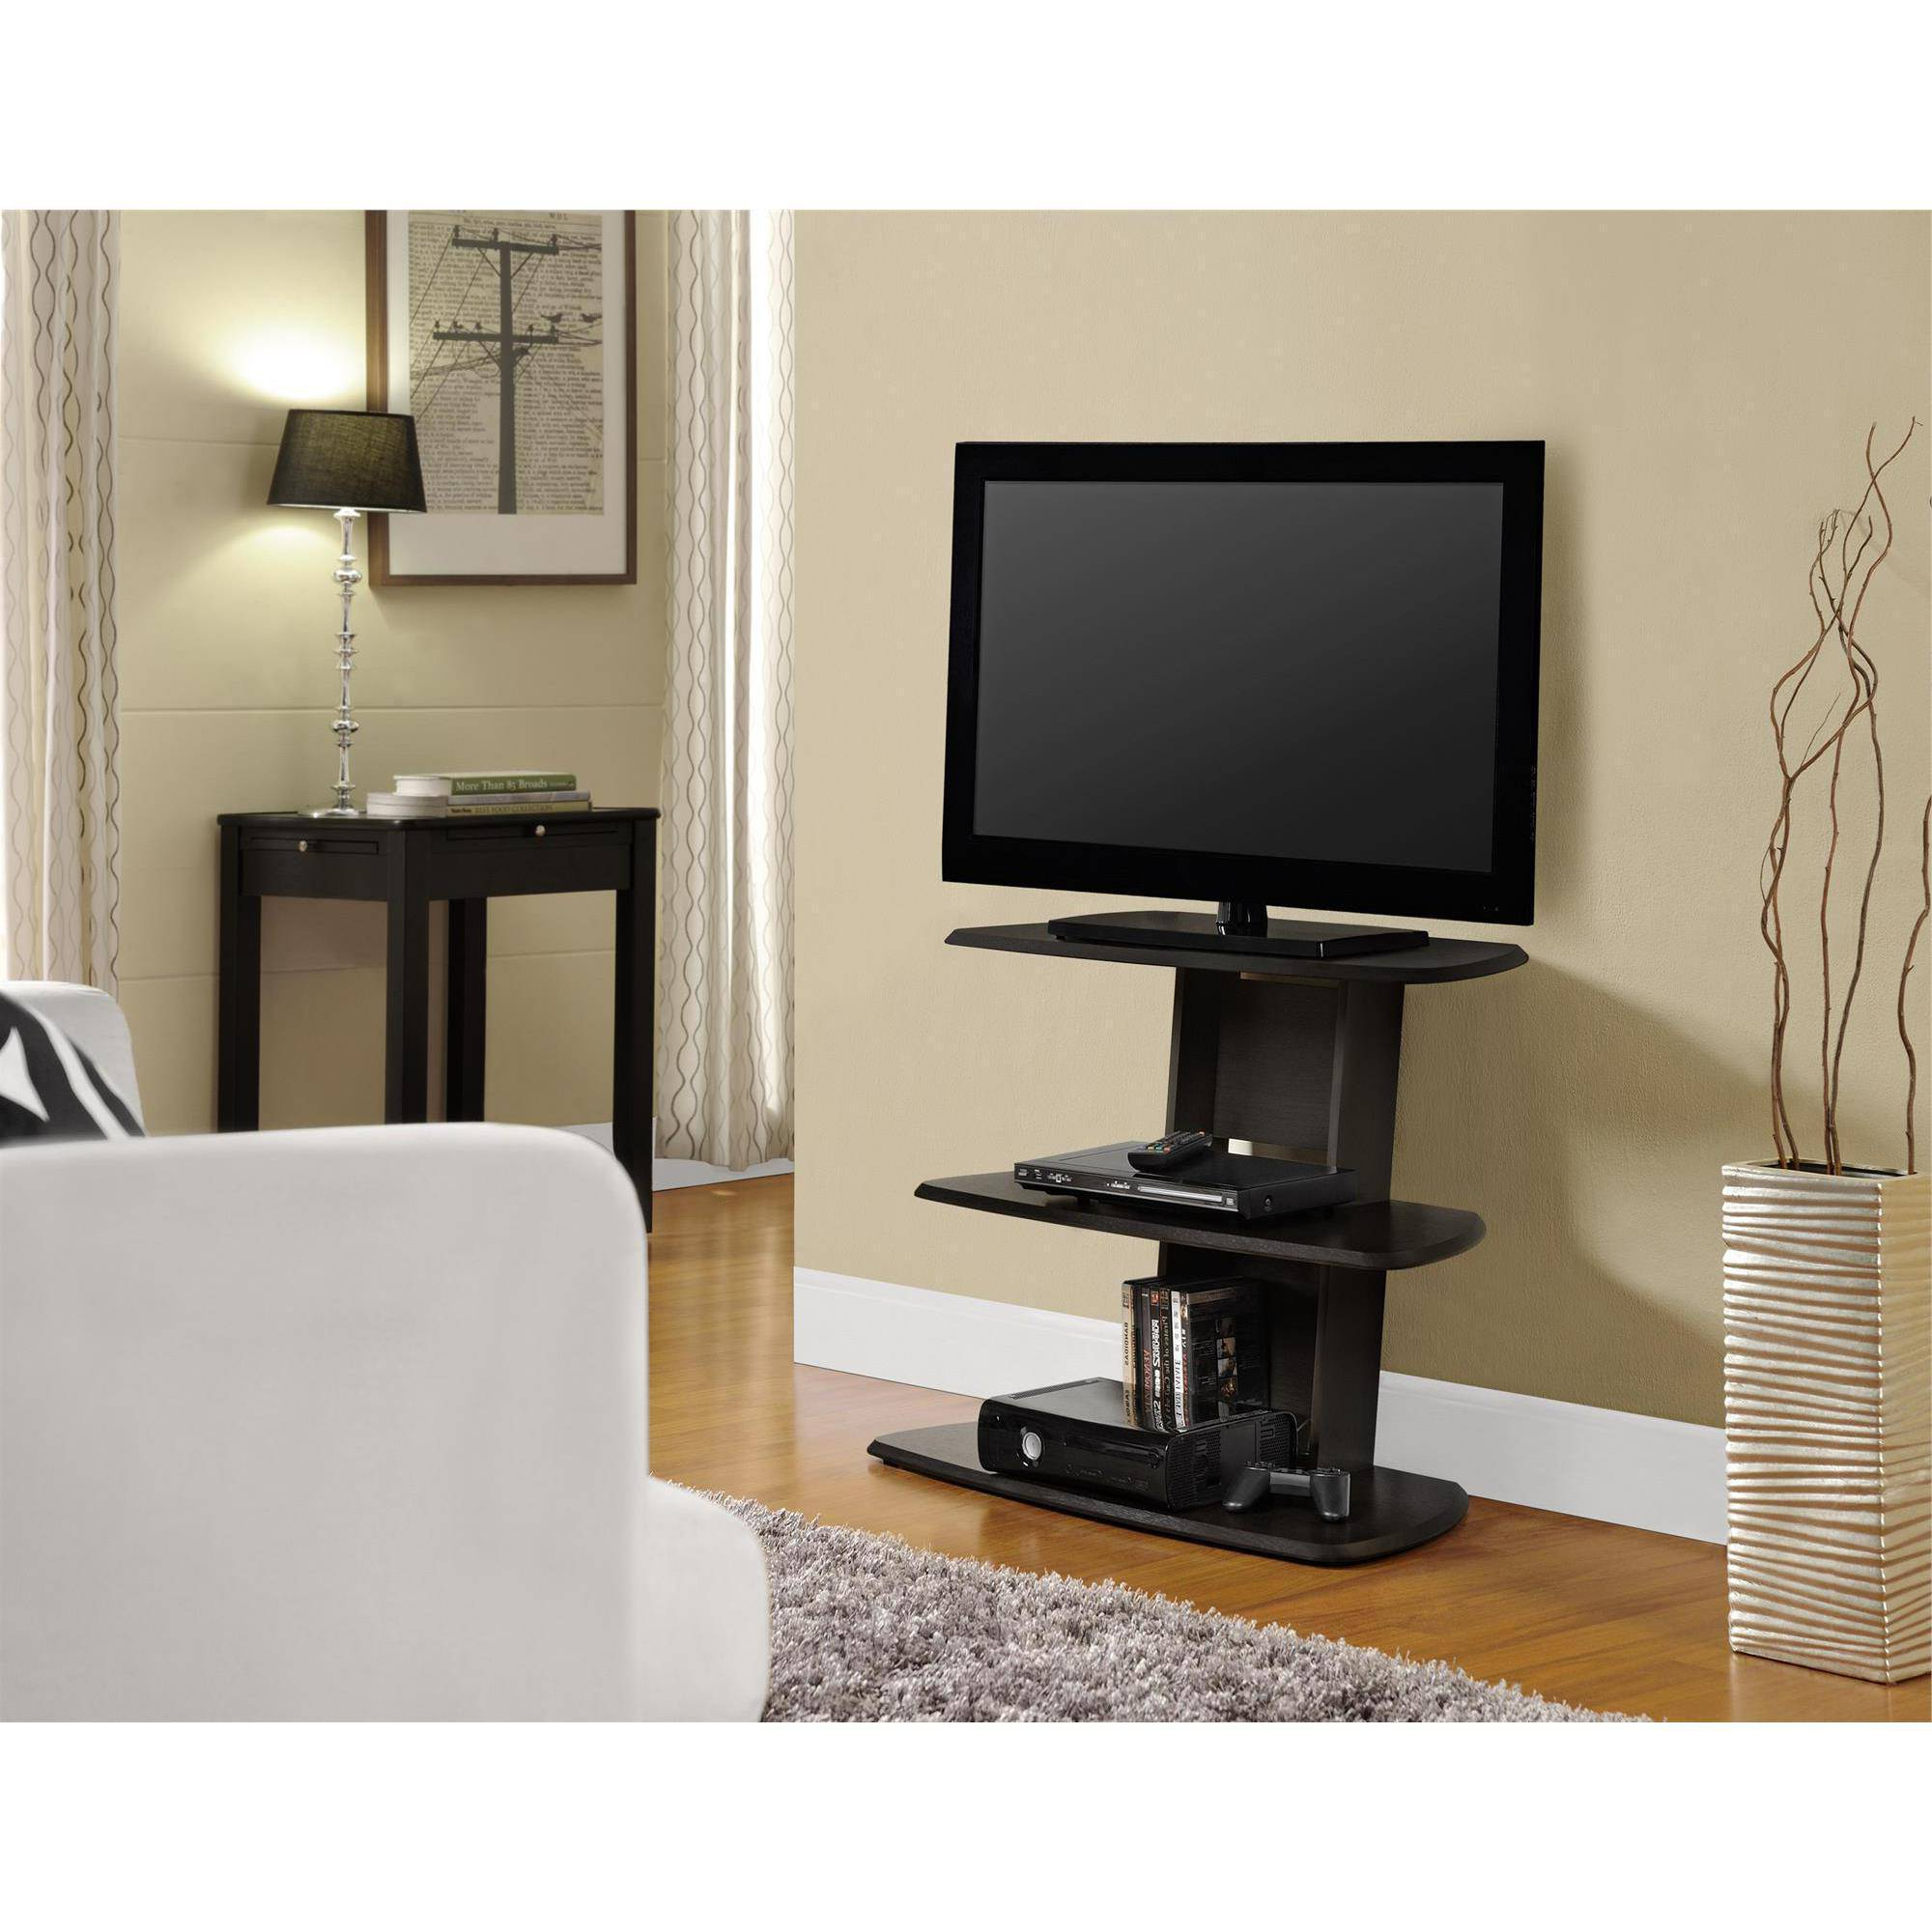 Tv Stands Costco 30 Inch Wide Media Console White Stand Modern With Preferred 24 Inch Led Tv Stands (View 18 of 20)